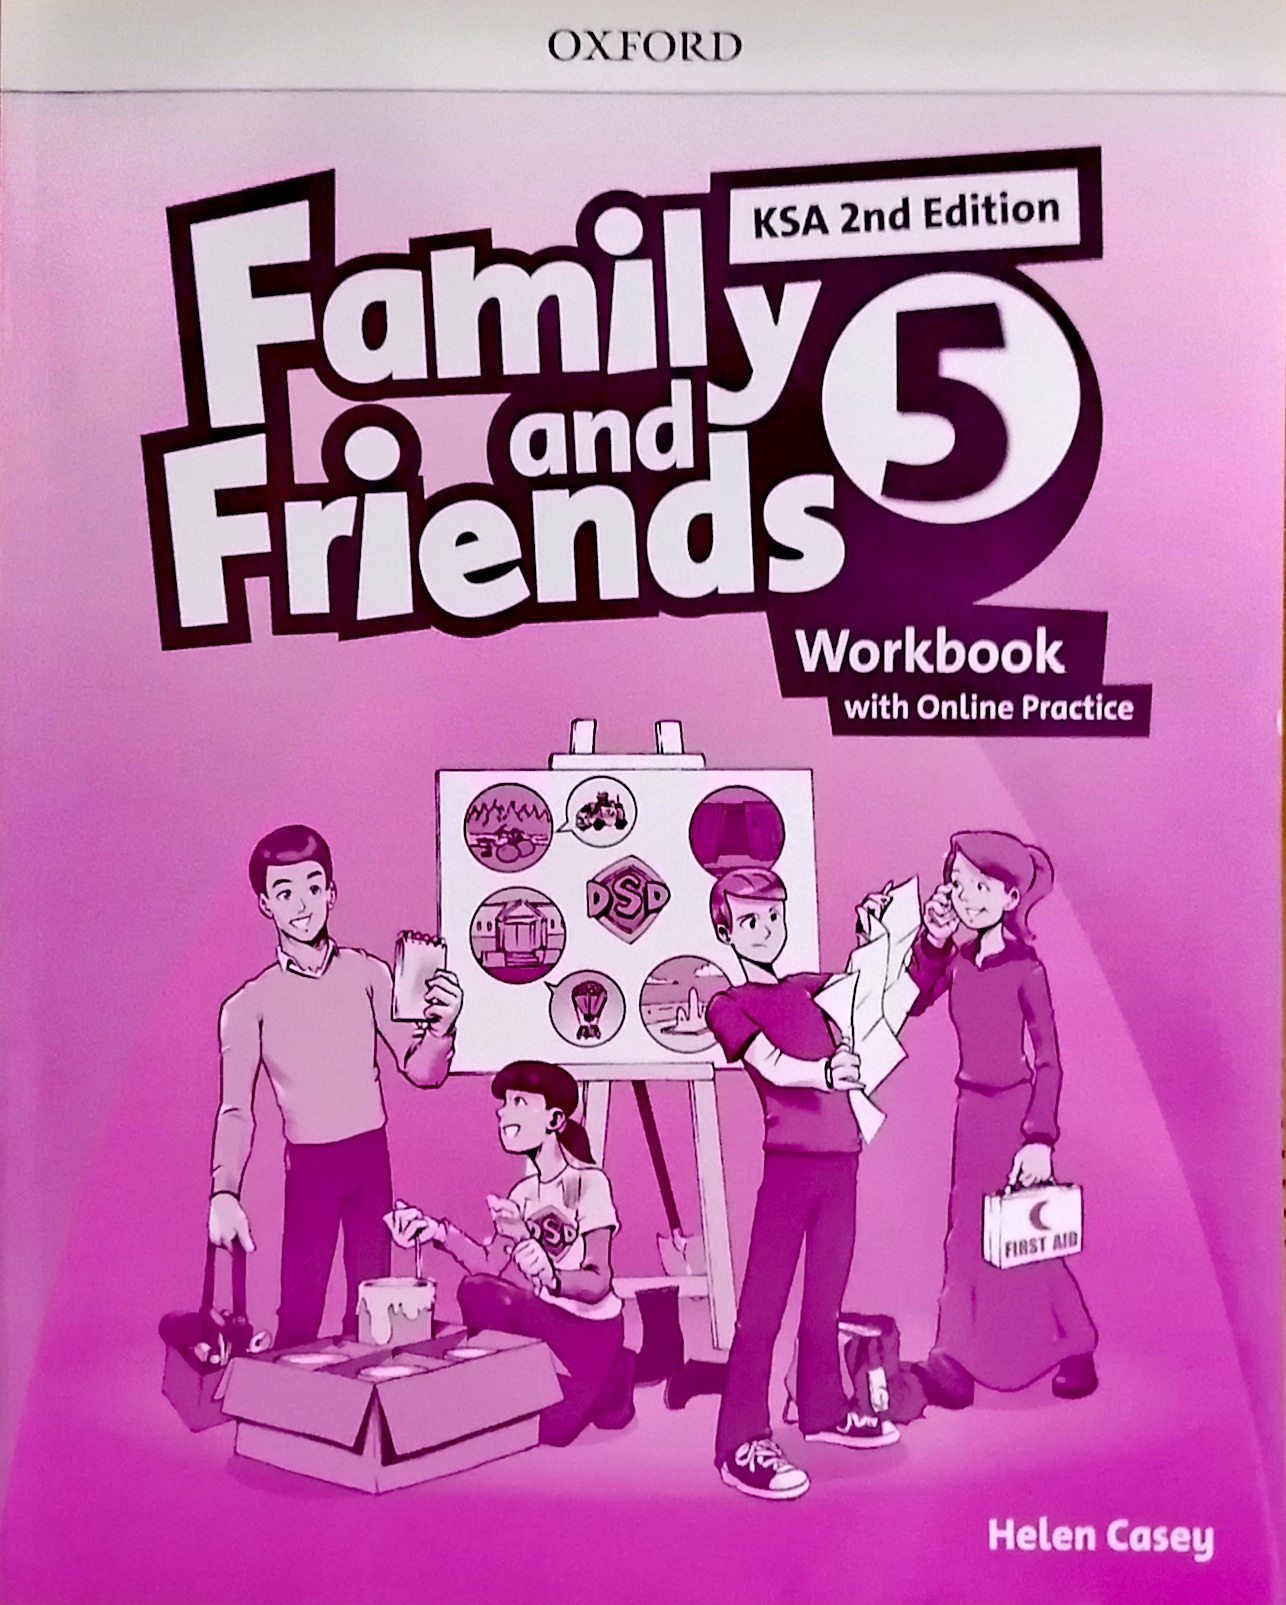 Family and Friends 5 (work)